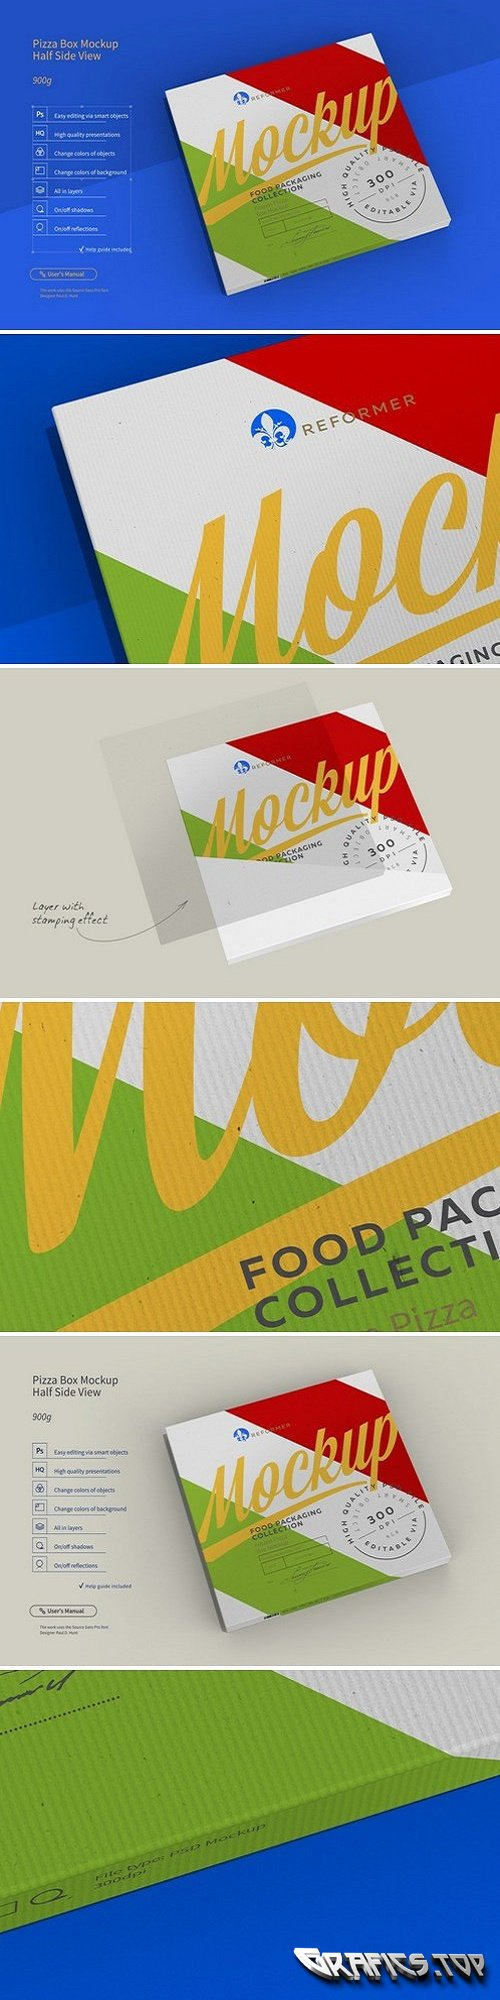 Pizza Box Mockup Half Side View 2428654